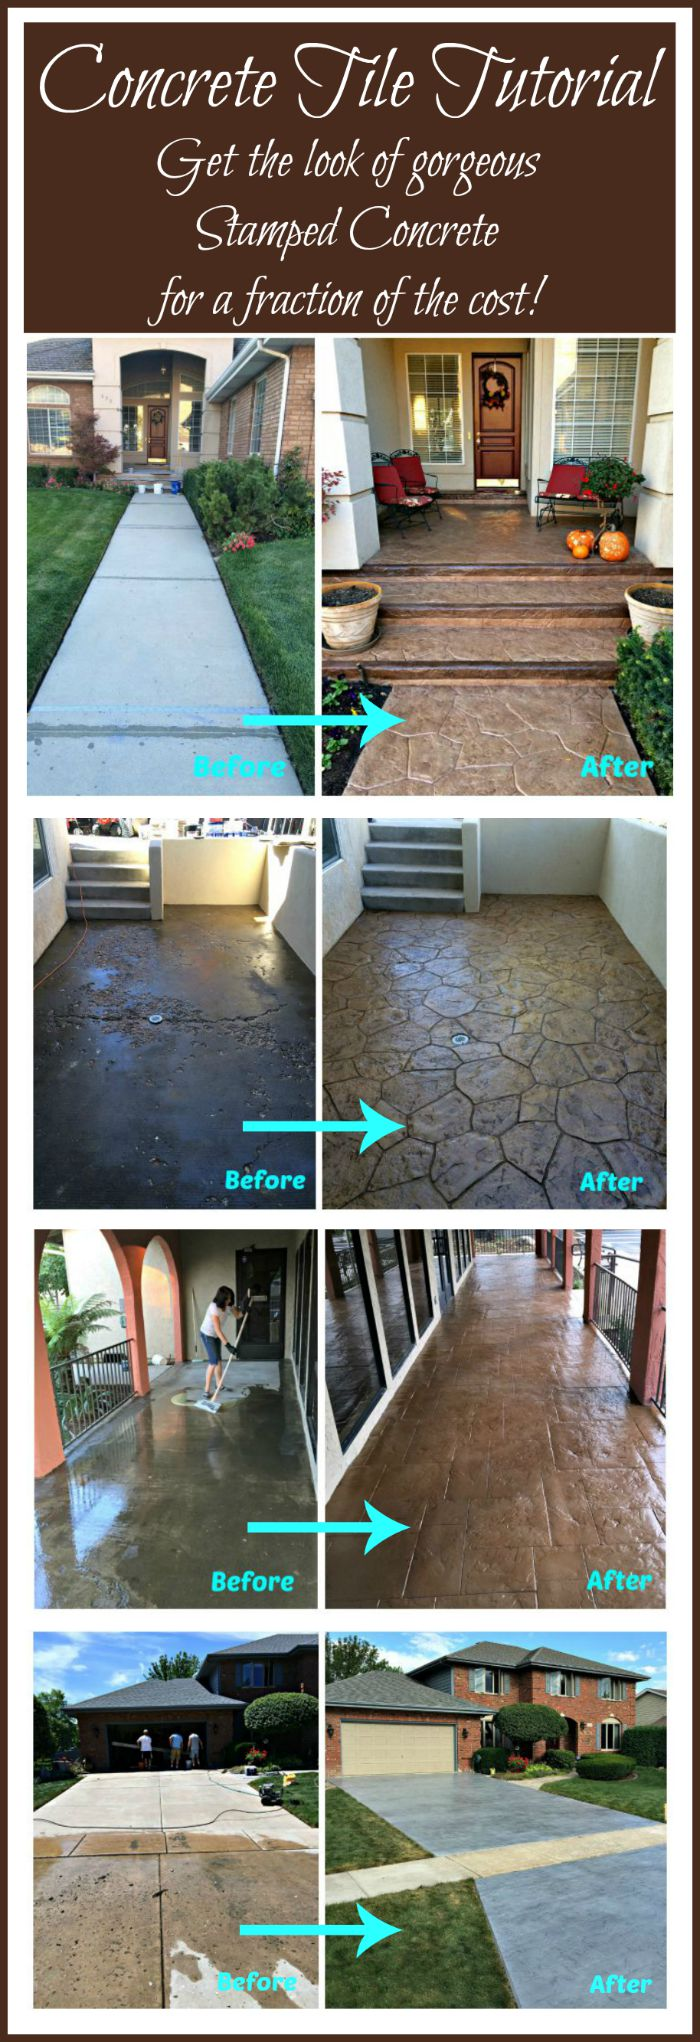 DIY CONCRETE TILE TUTORIAL - Get the look of stamped concrete for a fraction of the cost!